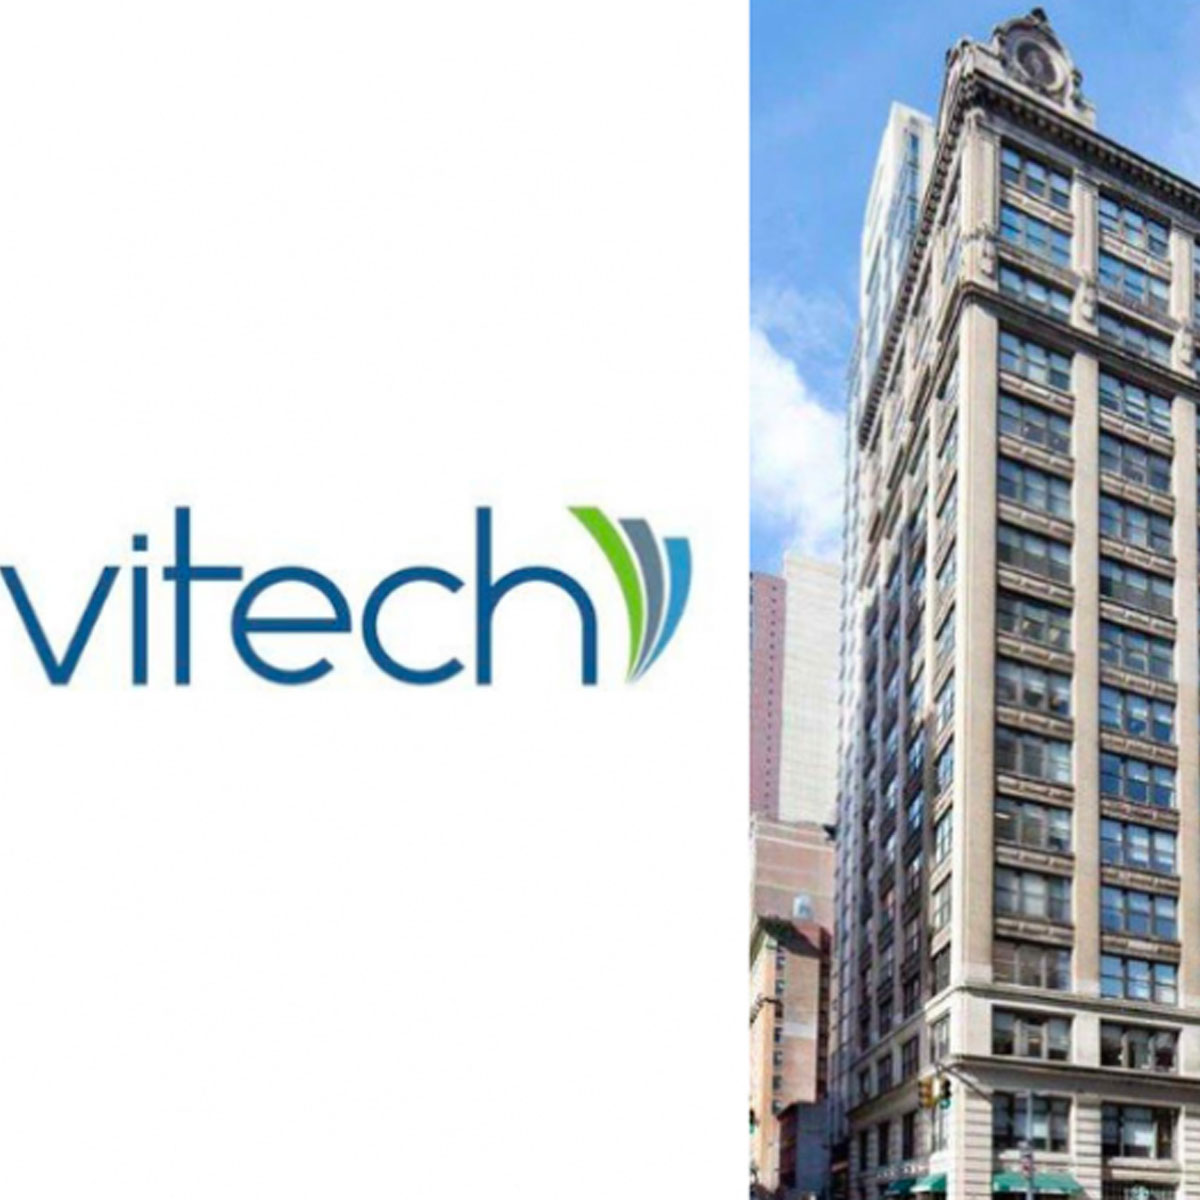 Vitech Systems Inks Deal for Additional 10,000 Square Feet in NoMad